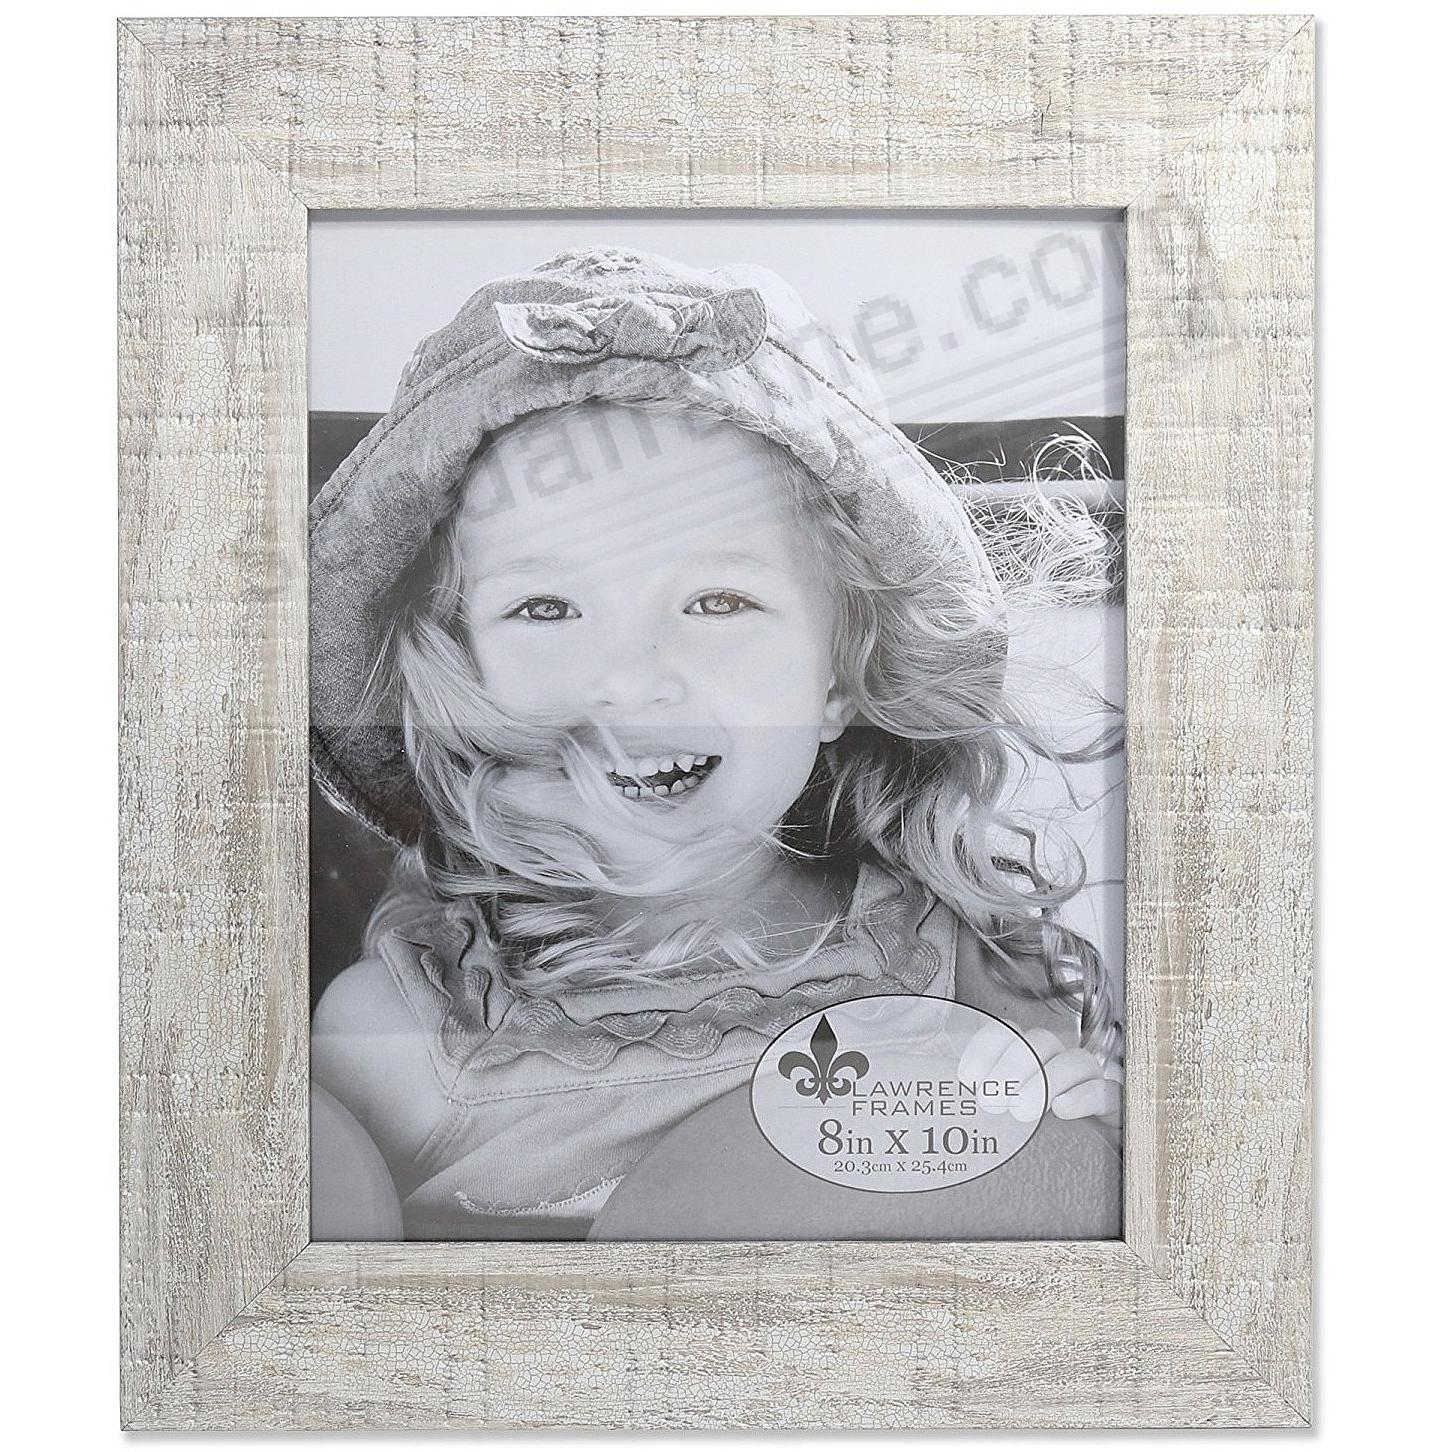 Weathered WHITE PEARLIZED MAPLE 8x10 frame by Lawrence®